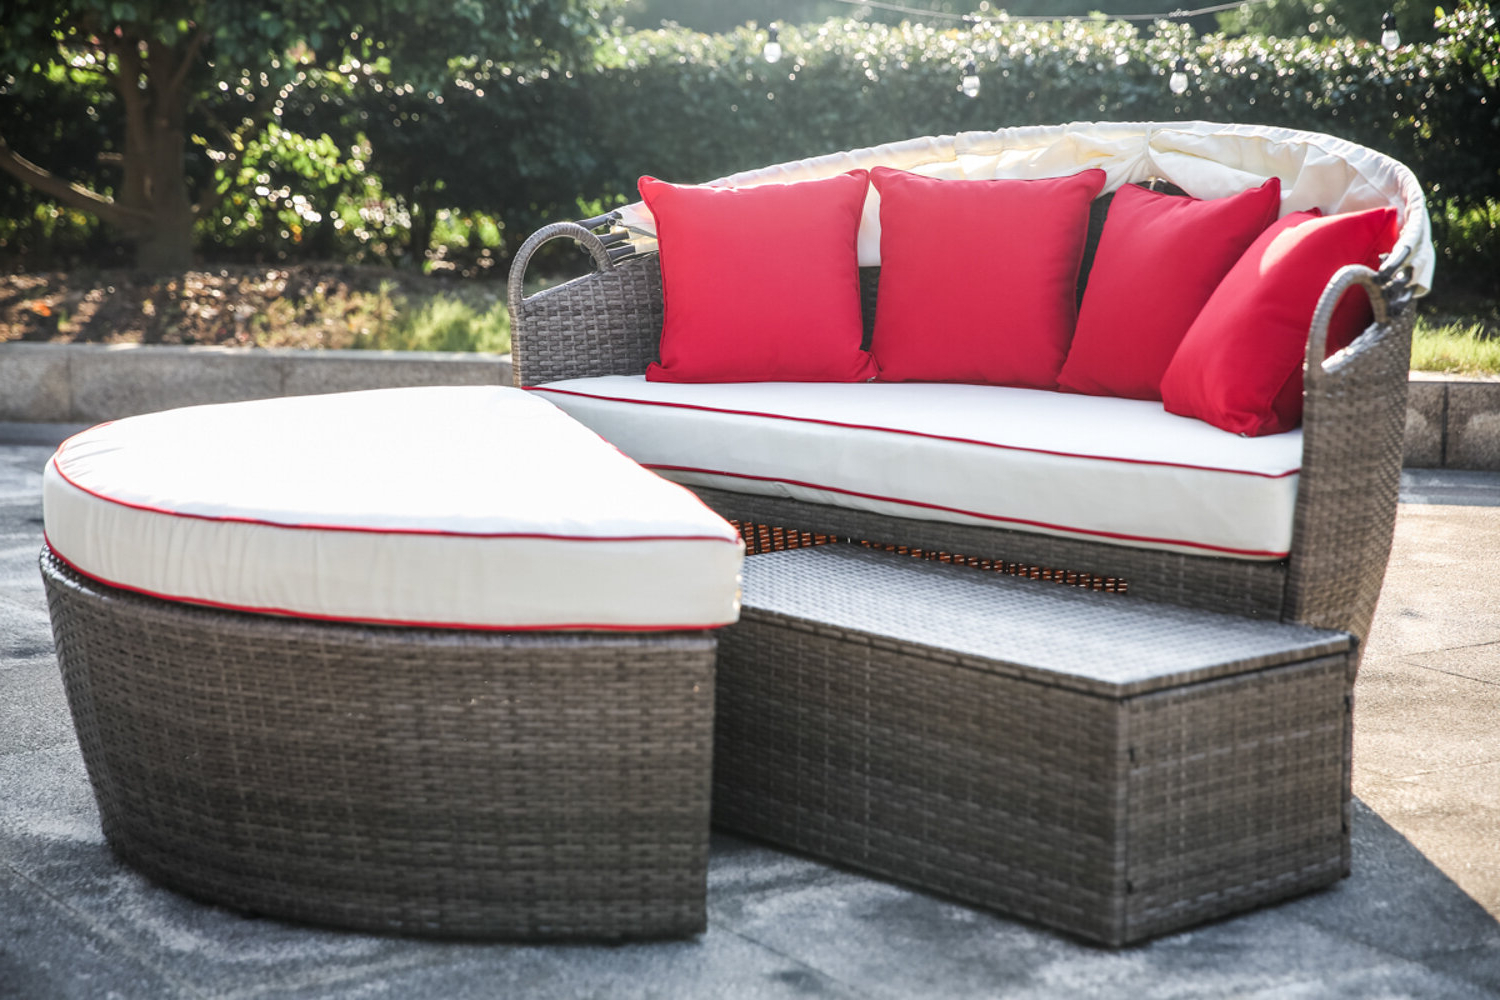 Leiston Round Patio Daybeds With Cushions Intended For Well Liked Fansler Patio Daybed With Cushions (View 8 of 20)